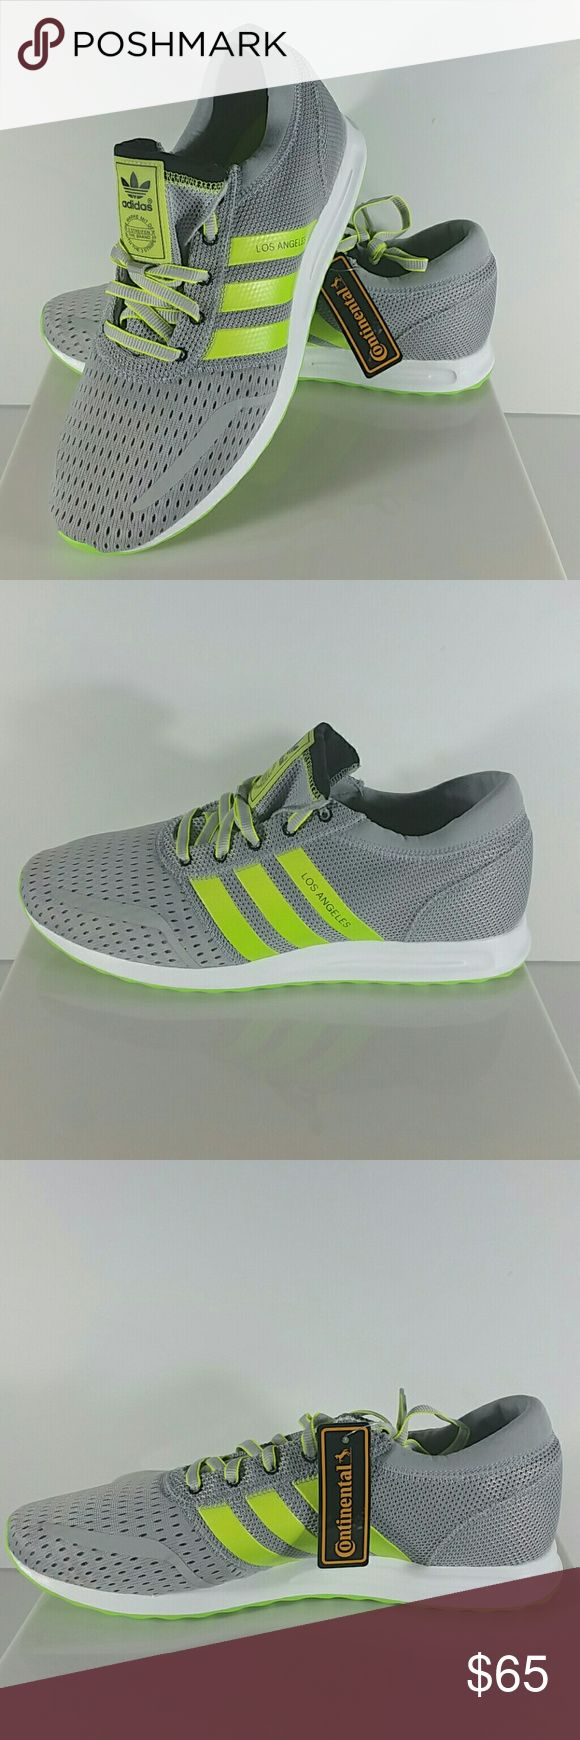 Adidas Originals Los Angeles Trainer Size 11 Brand new Adidas Originals Los Angeles men's size 11. NWOB MSRP: $120   Adidas Originals Los Angeles Shoes Trainers COLOR: Grey/green/white (clear ONIX/Solar Grn/solar Yew) CONDITION: BRAND NEW NEVER BEEN WORN Adidas Shoes Sneakers